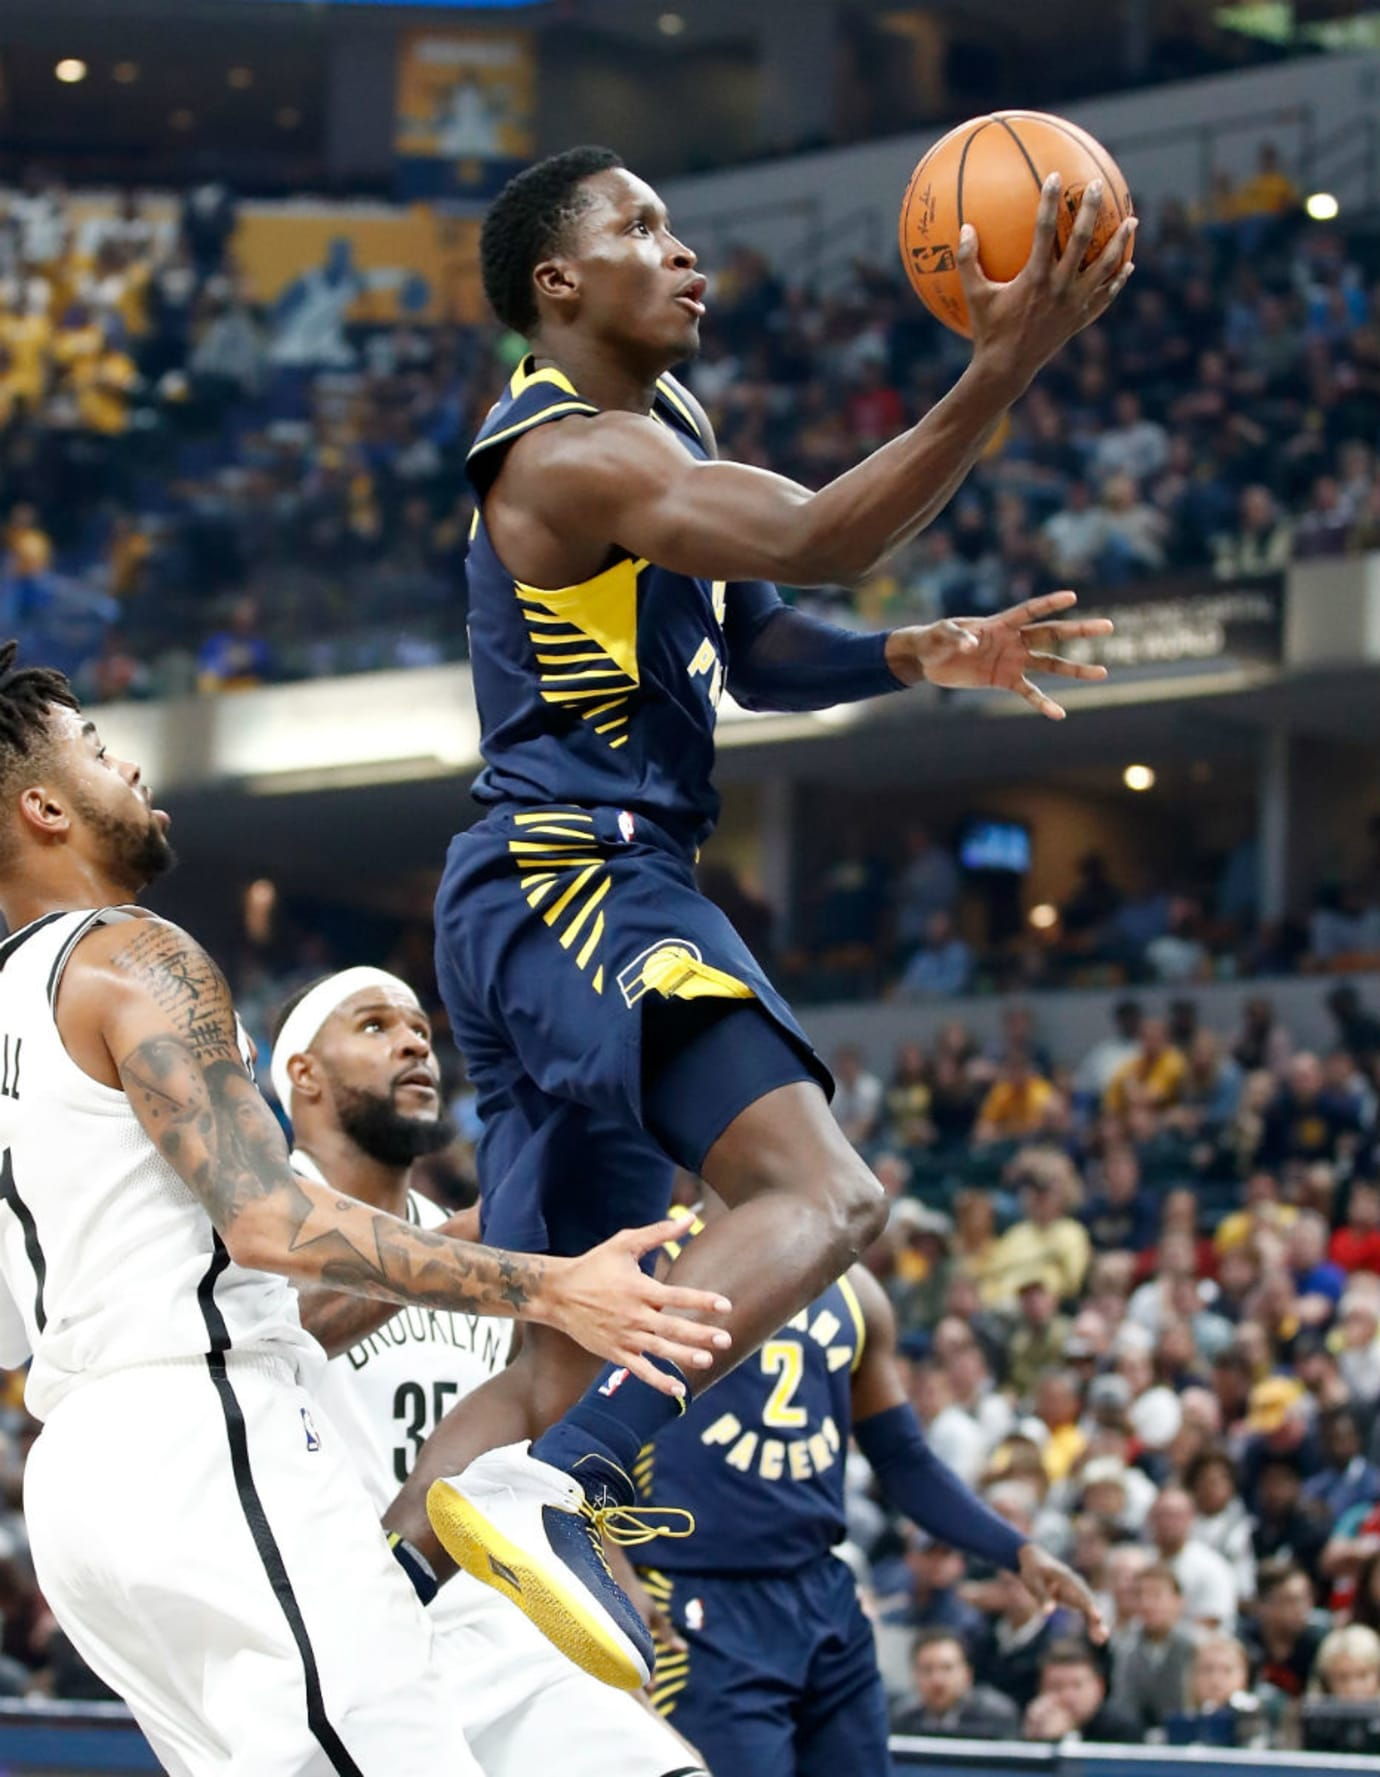 Victor Oladipo Air Jordan 32 Low Pacers PE